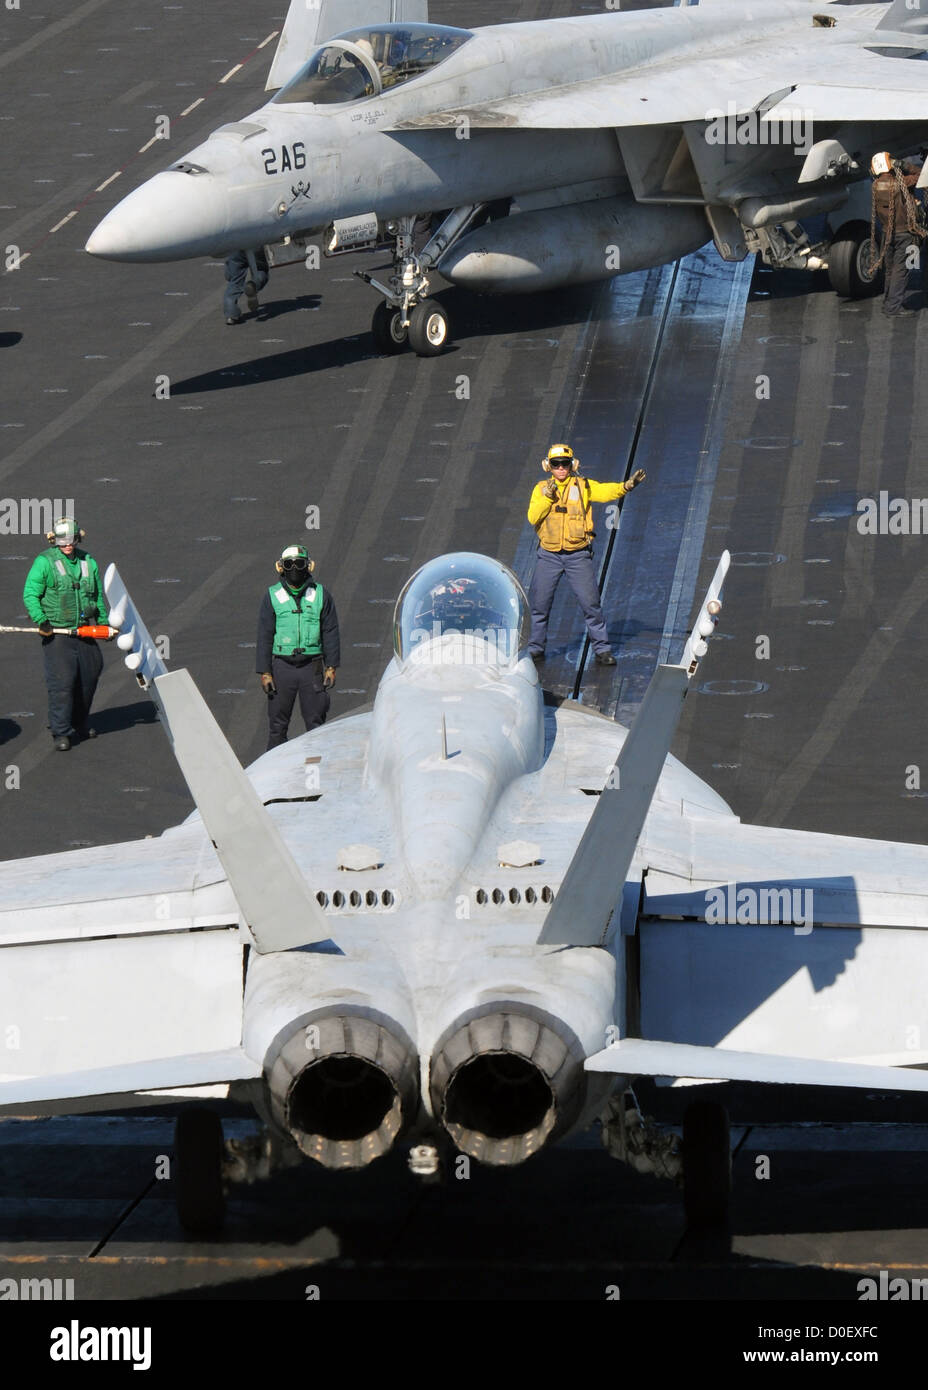 An aviation boatswain's mate directs an F/A-18C Hornet on the flight deck of the aircraft carrier USS Nimitz - Stock Image